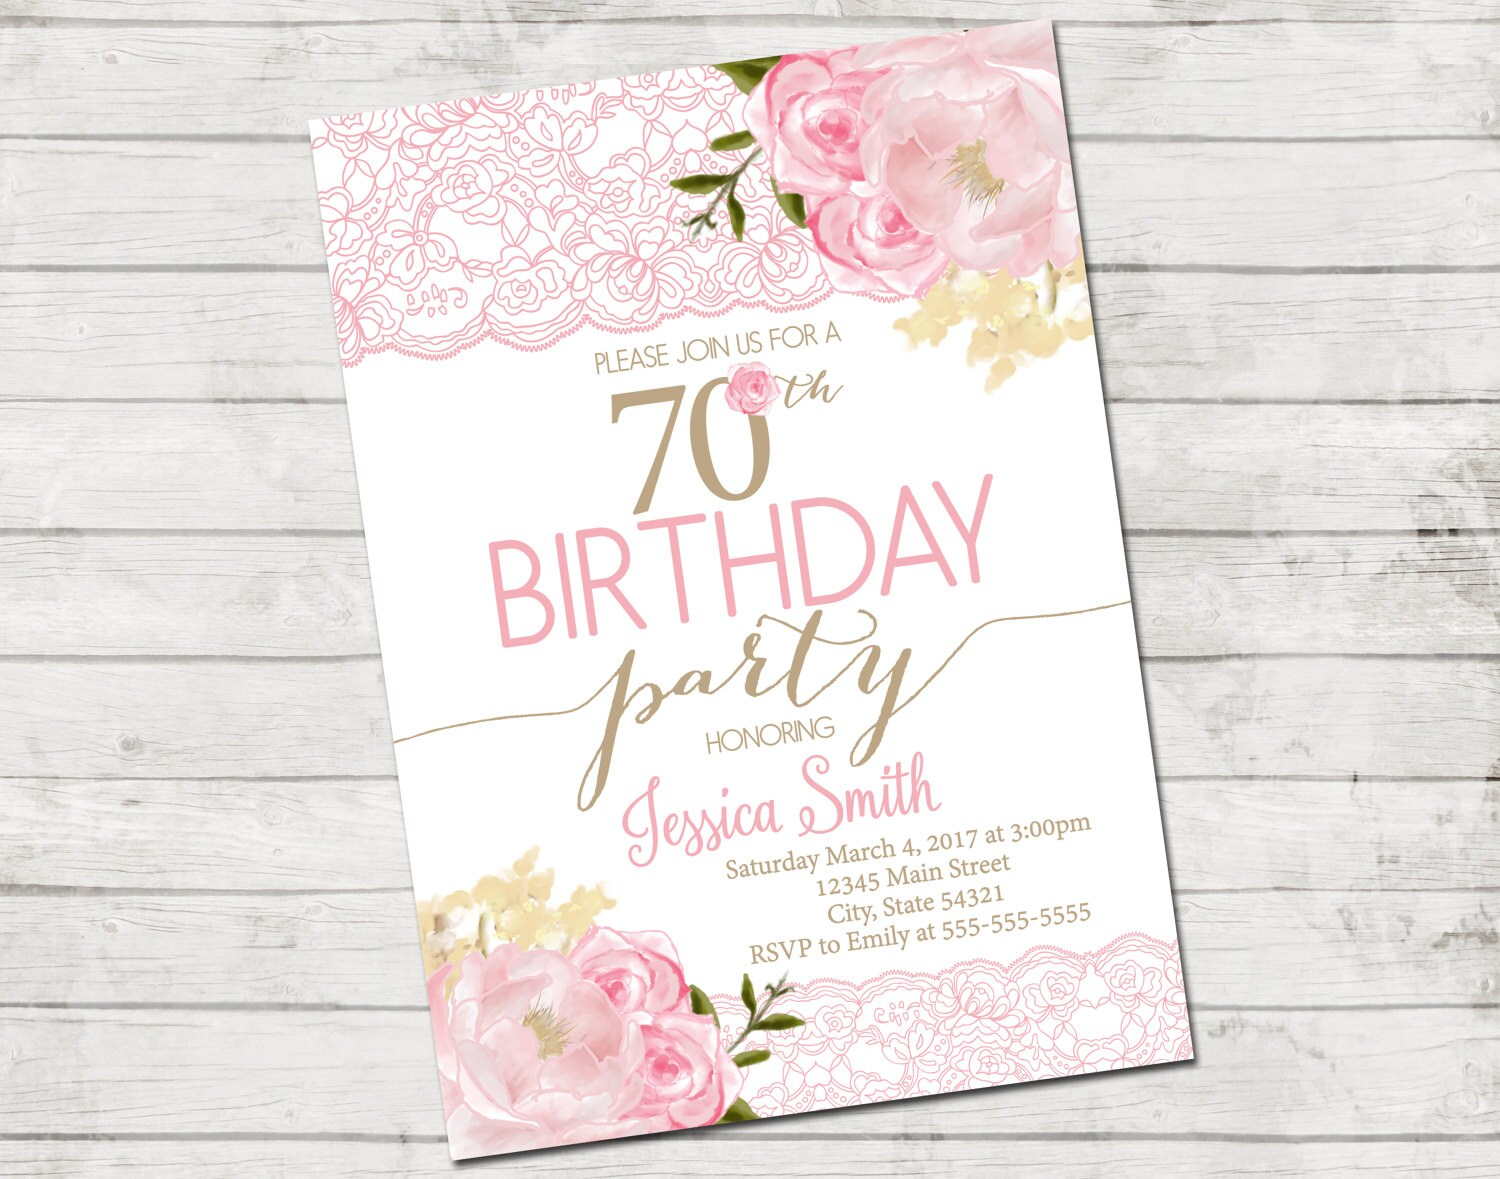 70th birthday party invitation 70th birthday flowers and etsy zoom izmirmasajfo